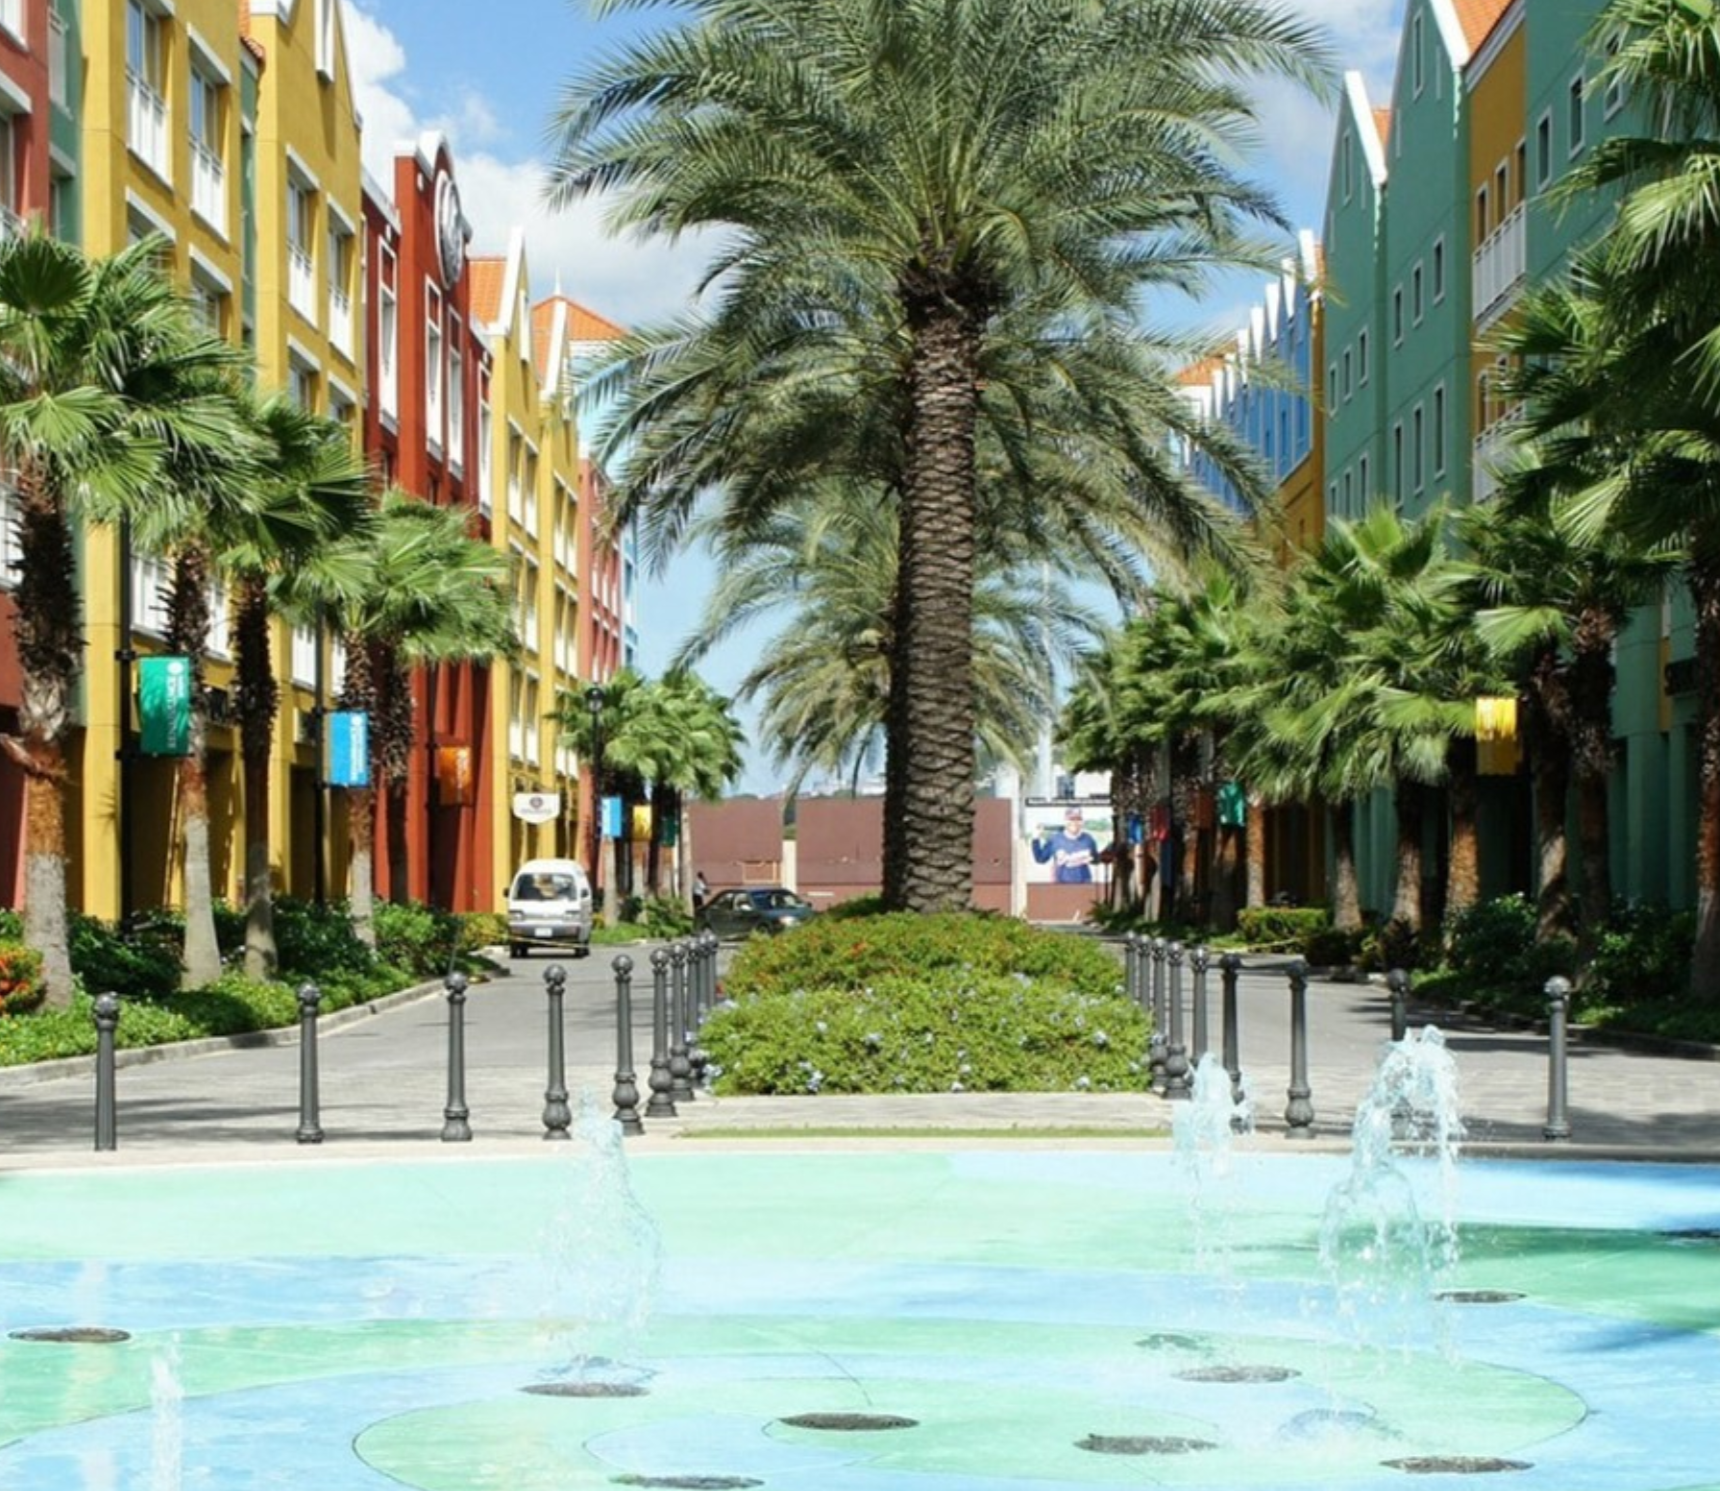 A beautiful street view with bright color buildings of blues, greens, oranges and reds lining both sides of a street with a median. Palms trees lining the street and in the foreground, a blue and cement swirl pattern on the ground with water fountains throughout. Property represented by Crye-Leike Real Estate Services.